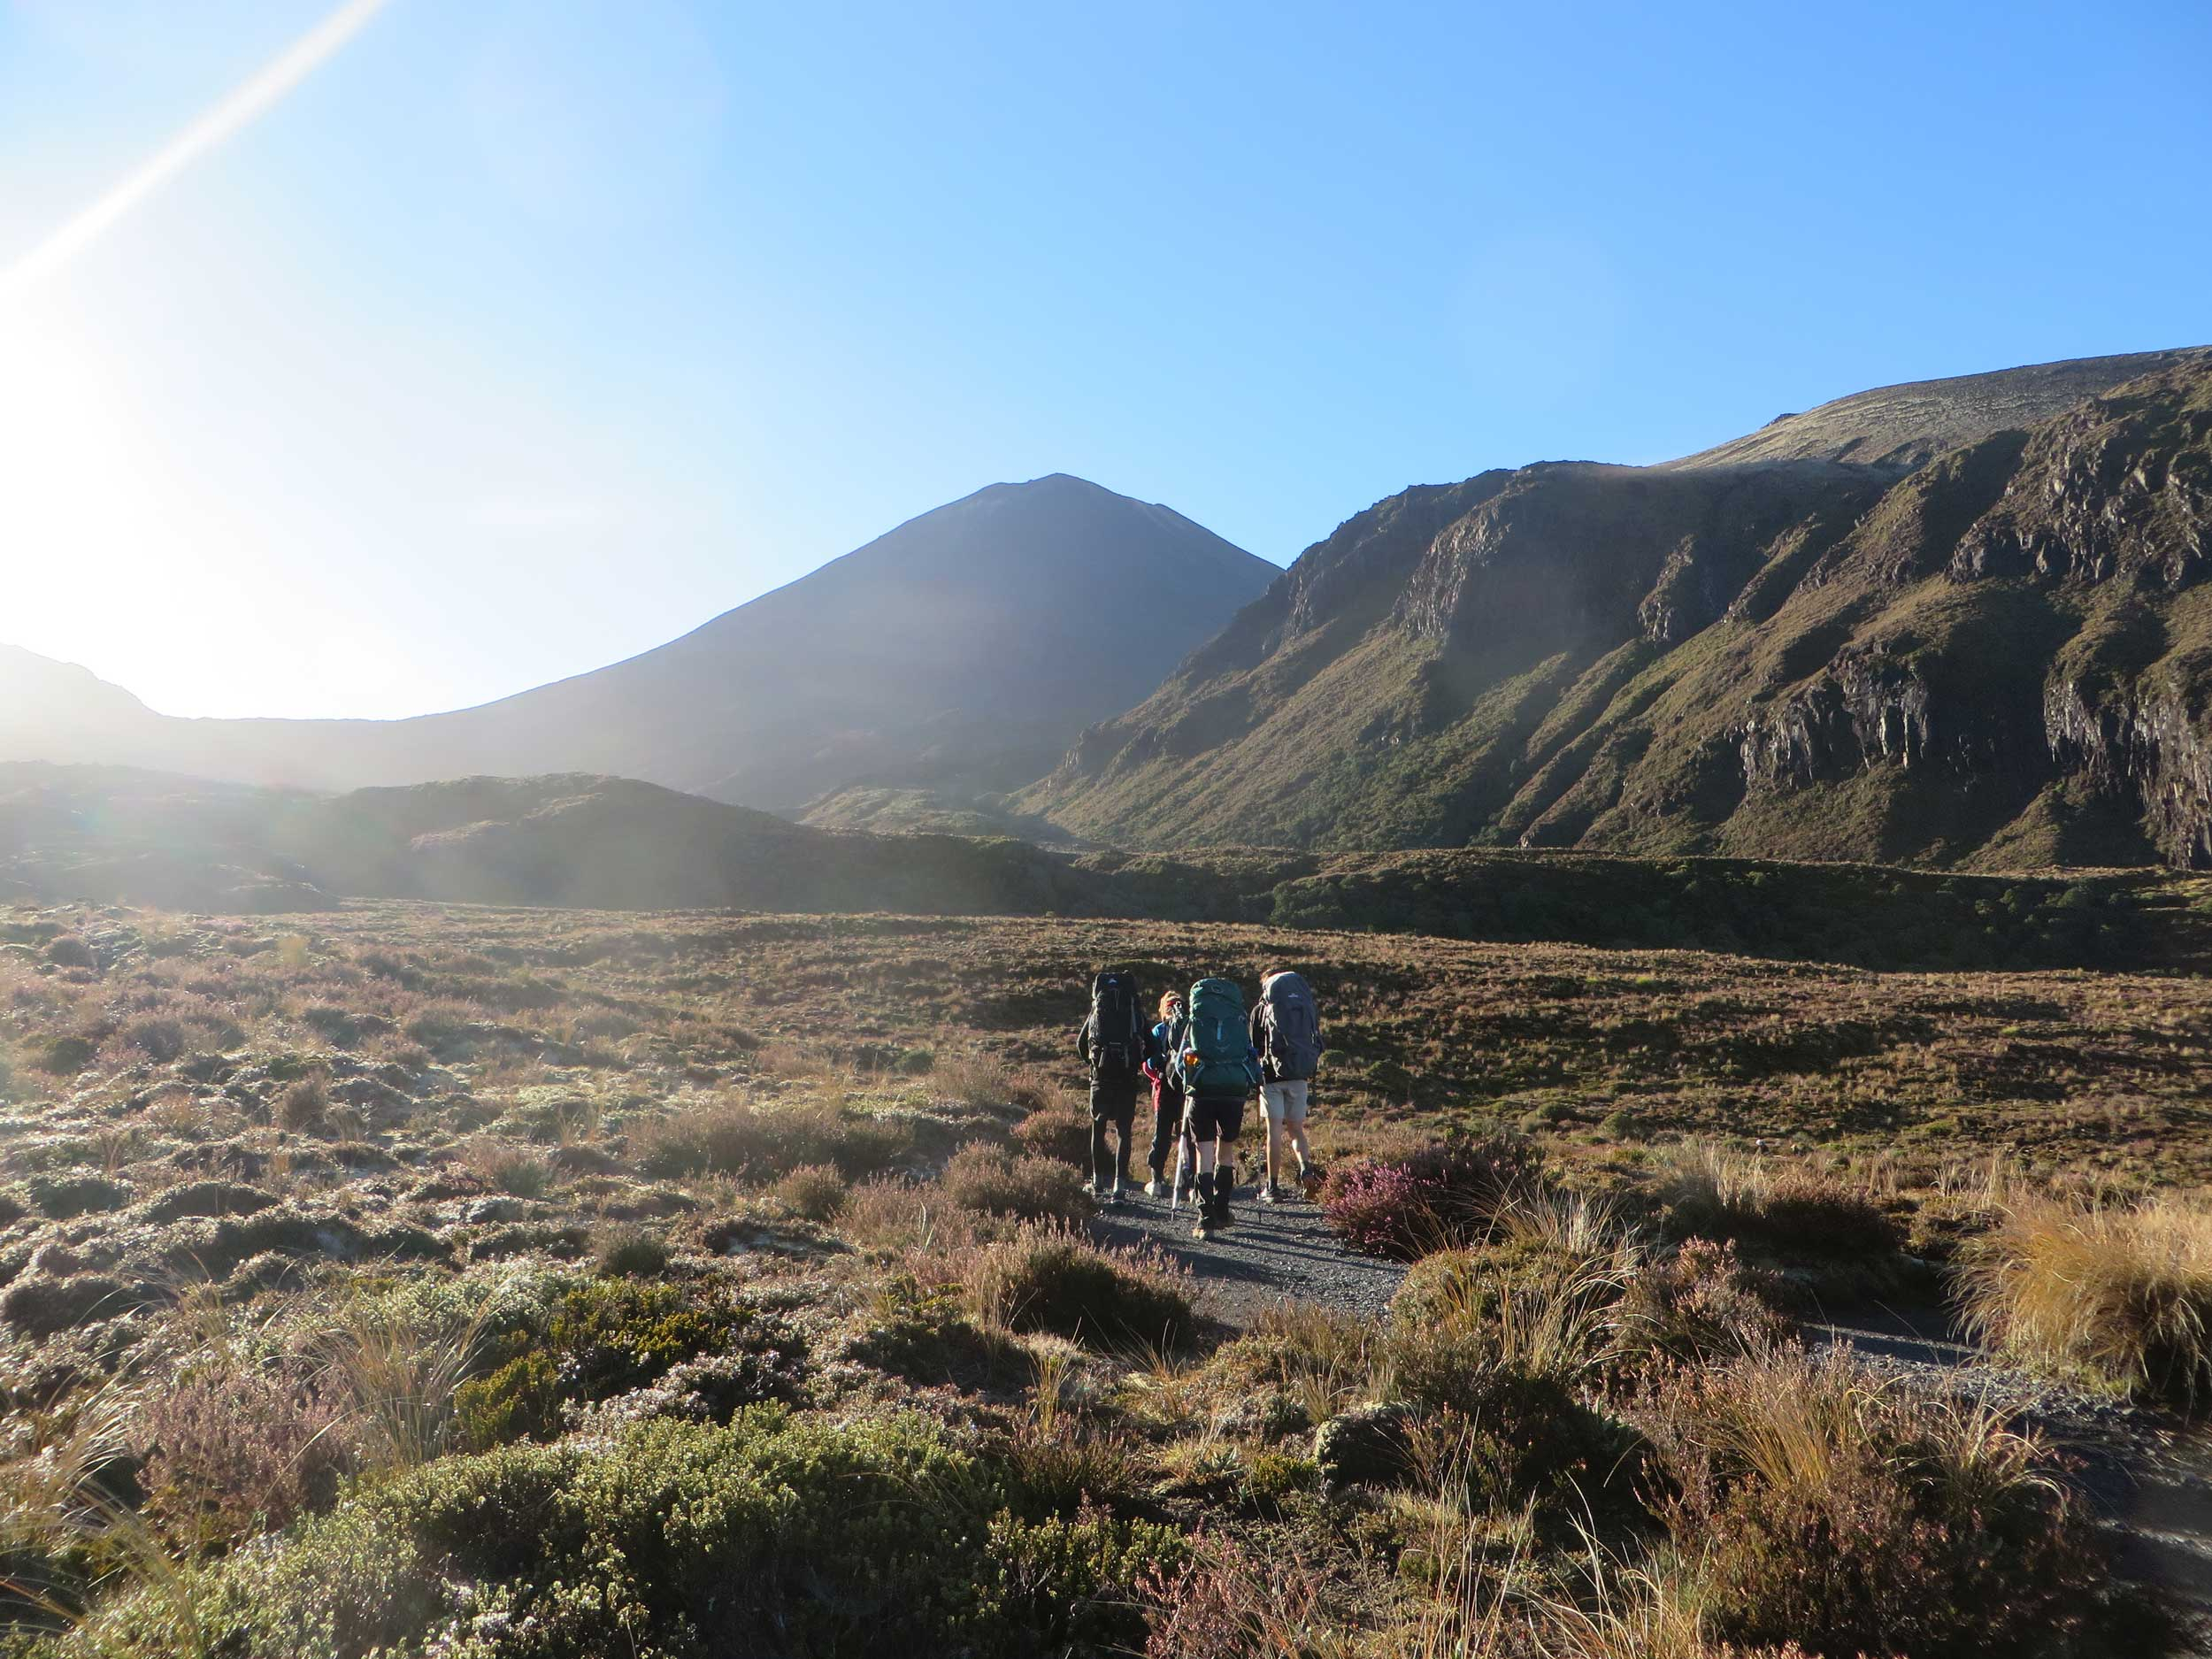 Four trampers walking away on alpine terrain, Tongariro, New Zealand